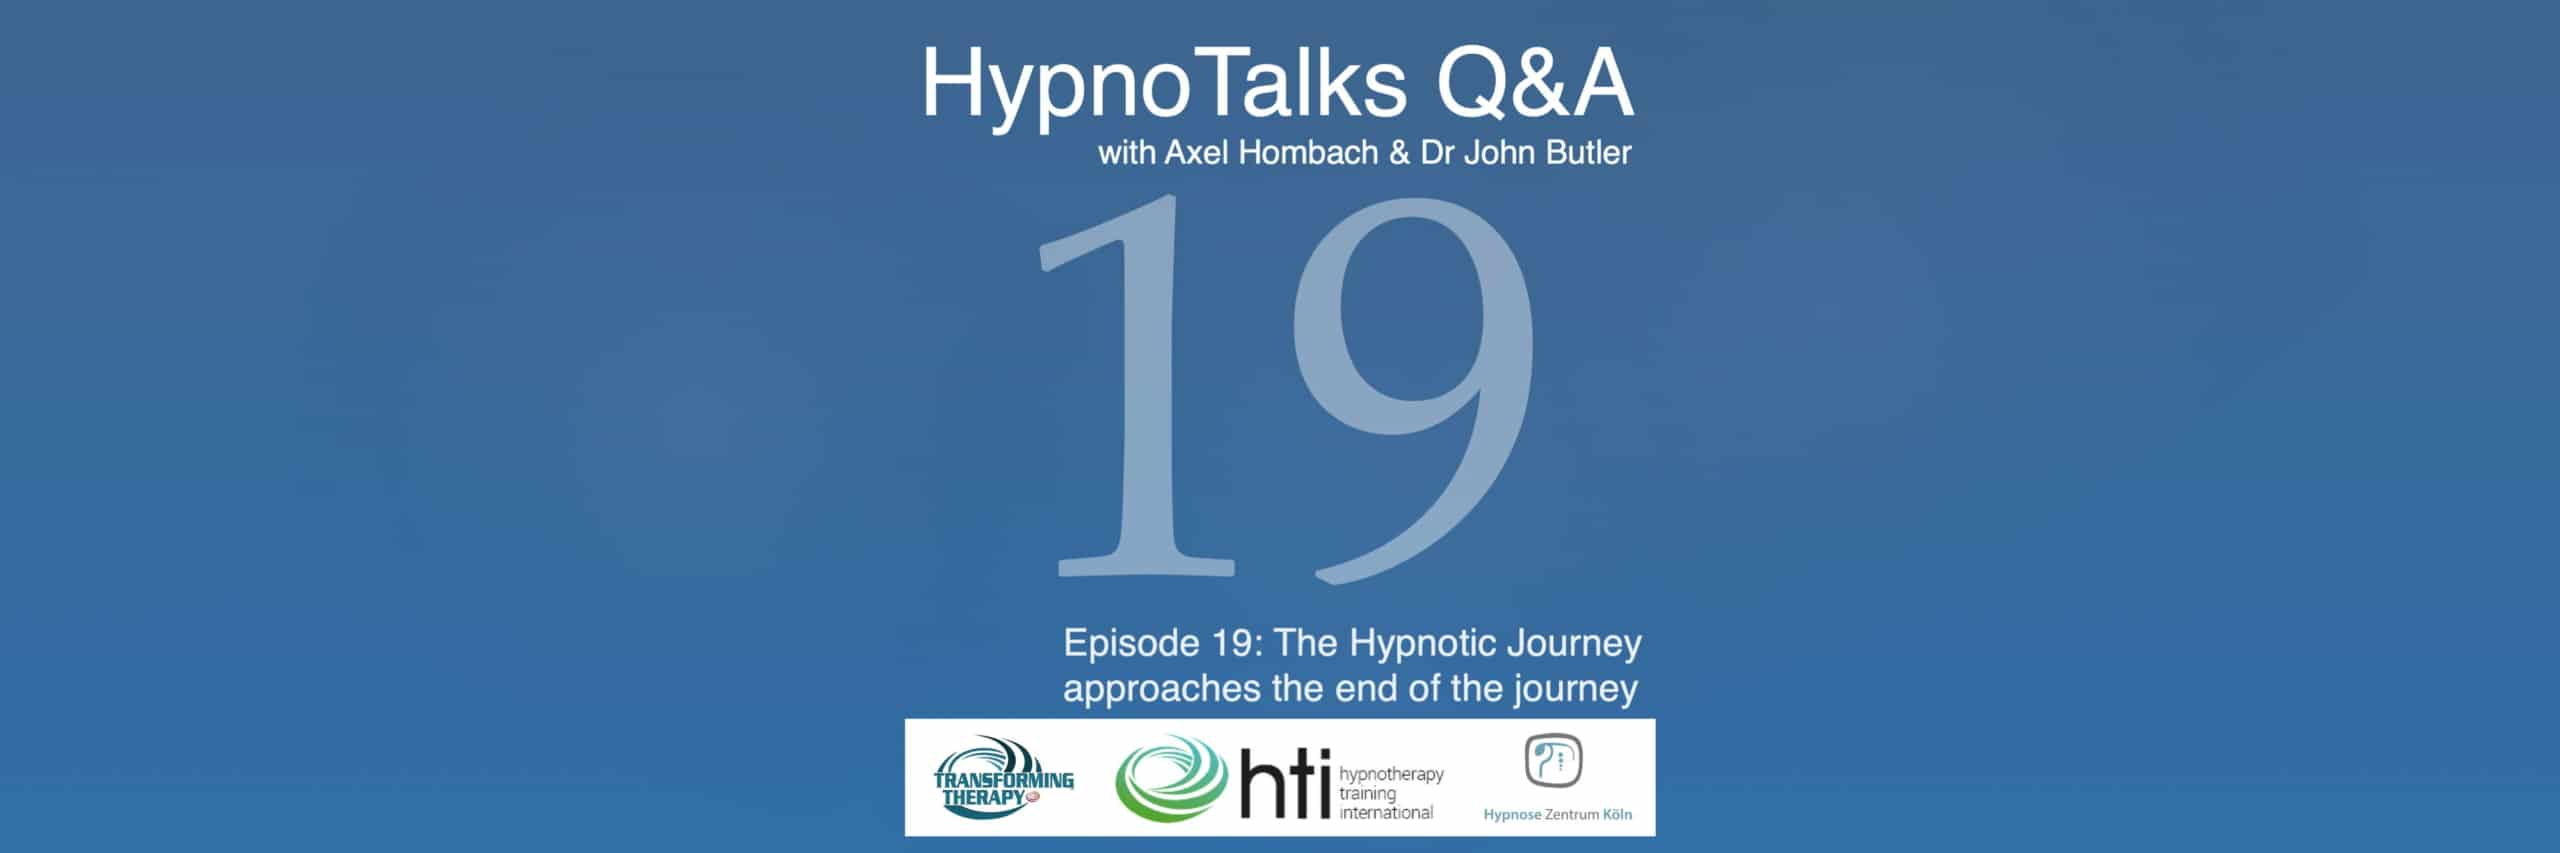 HypnoTalks-QA-Episode-19-Cover-2d-2-4000-60pc-scaled.jpg